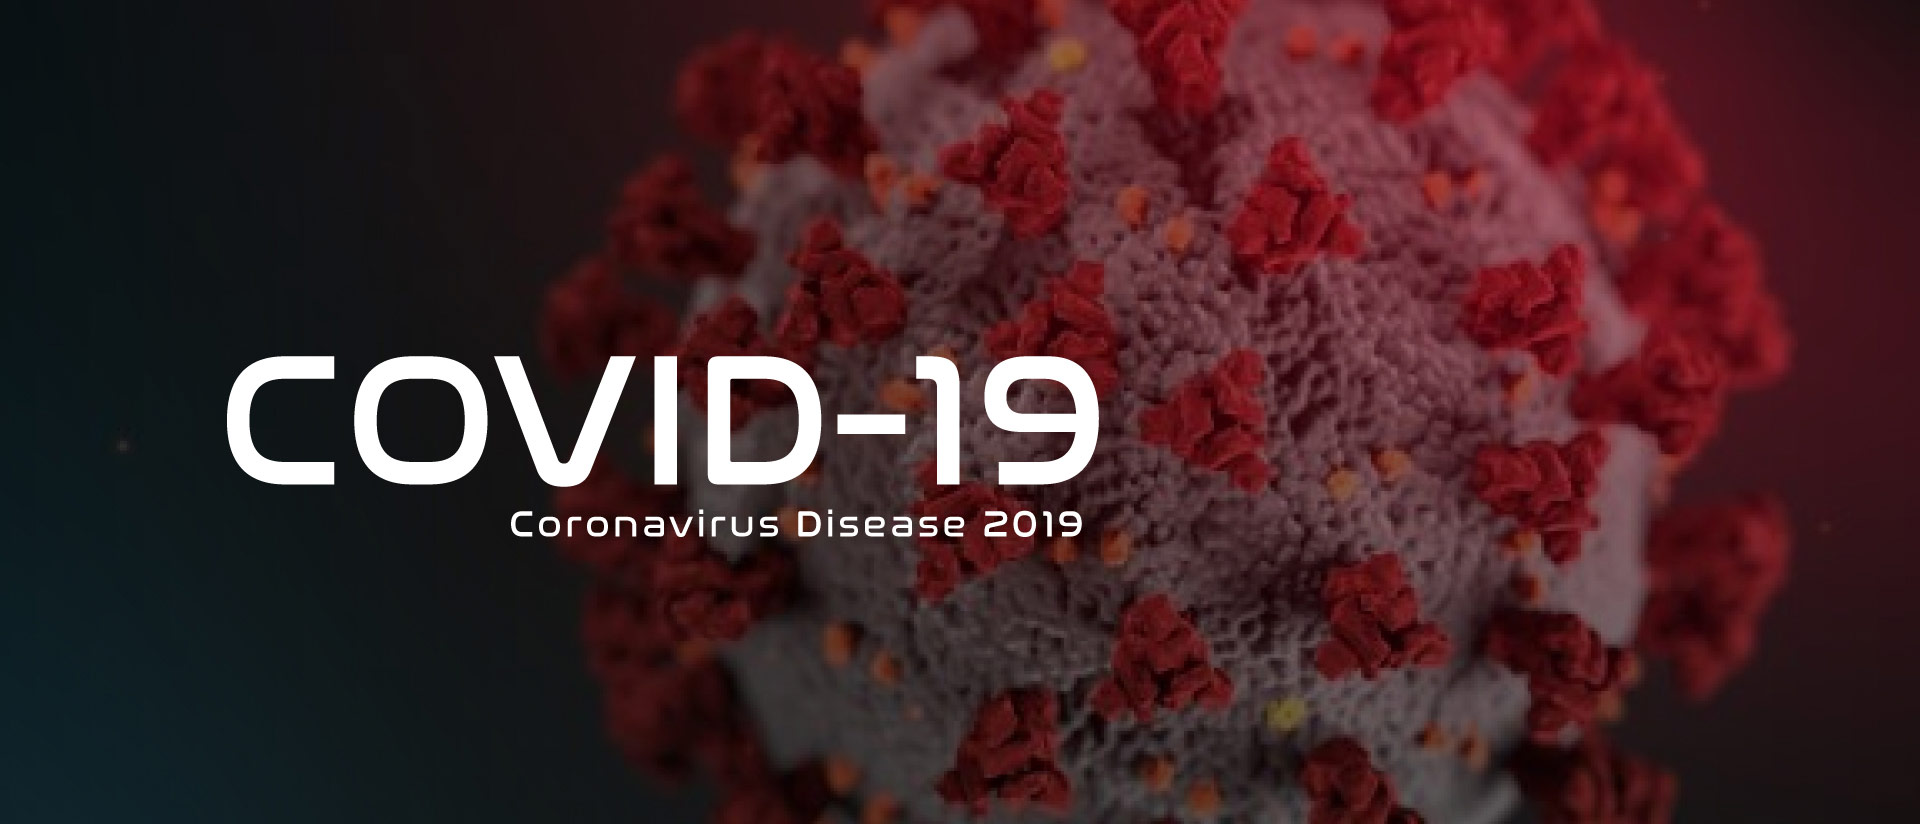 Coronavirus Disease 2019 Graphic